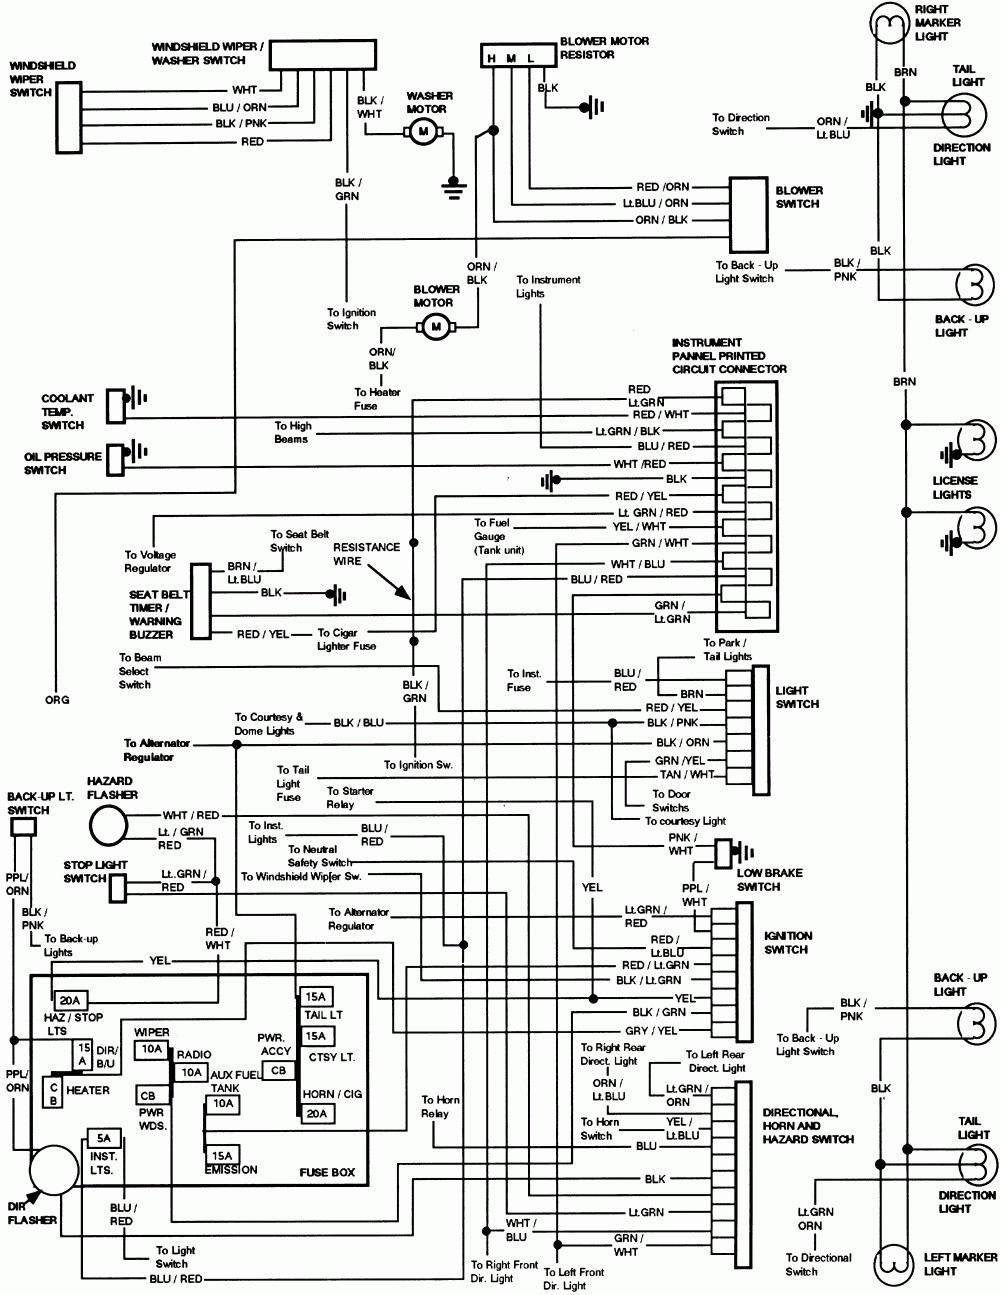 hight resolution of ford f series wiring diagrams wiring diagram insider 2011 ford f 150 wiring diagrams